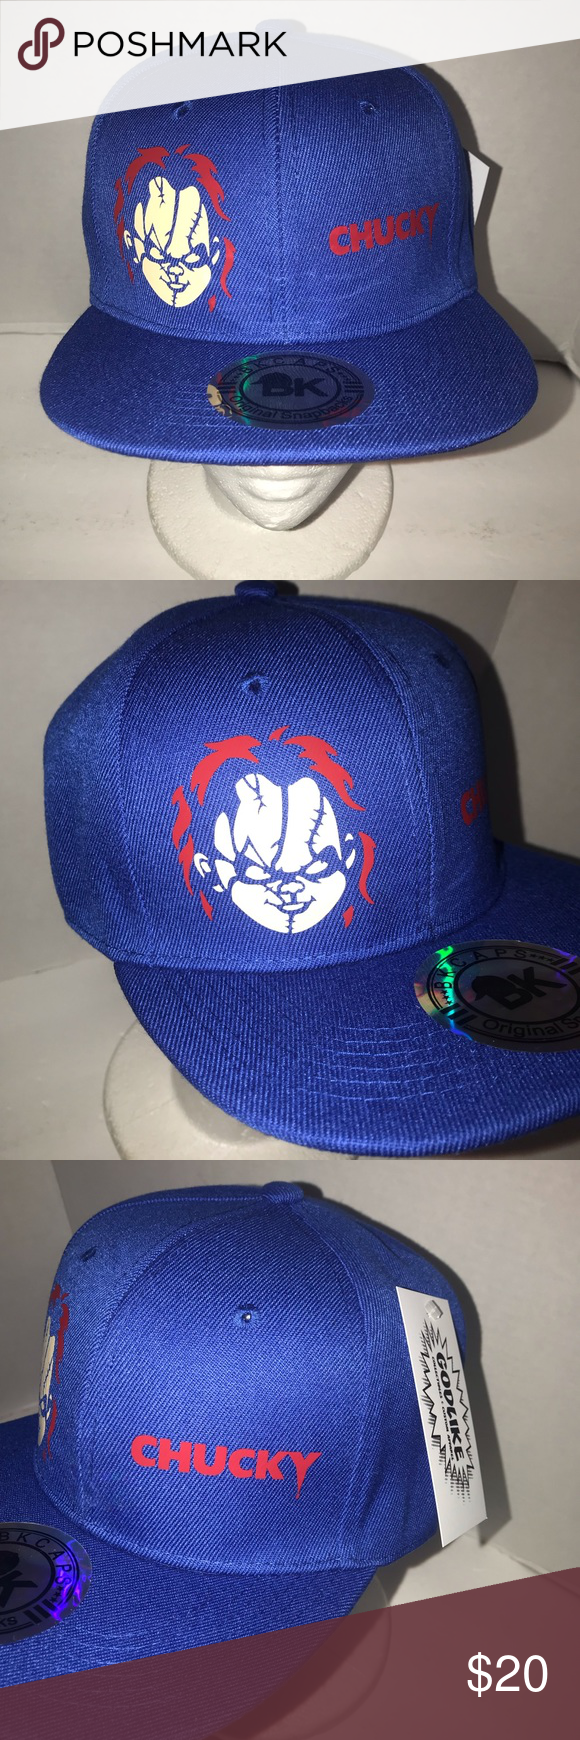 abeec04edd5 Custom snapback hat Chucky Child s play Custom made snapback hat Of Chucky  from the movie Child s play Blue One size fits most Bk caps Accessories Hats